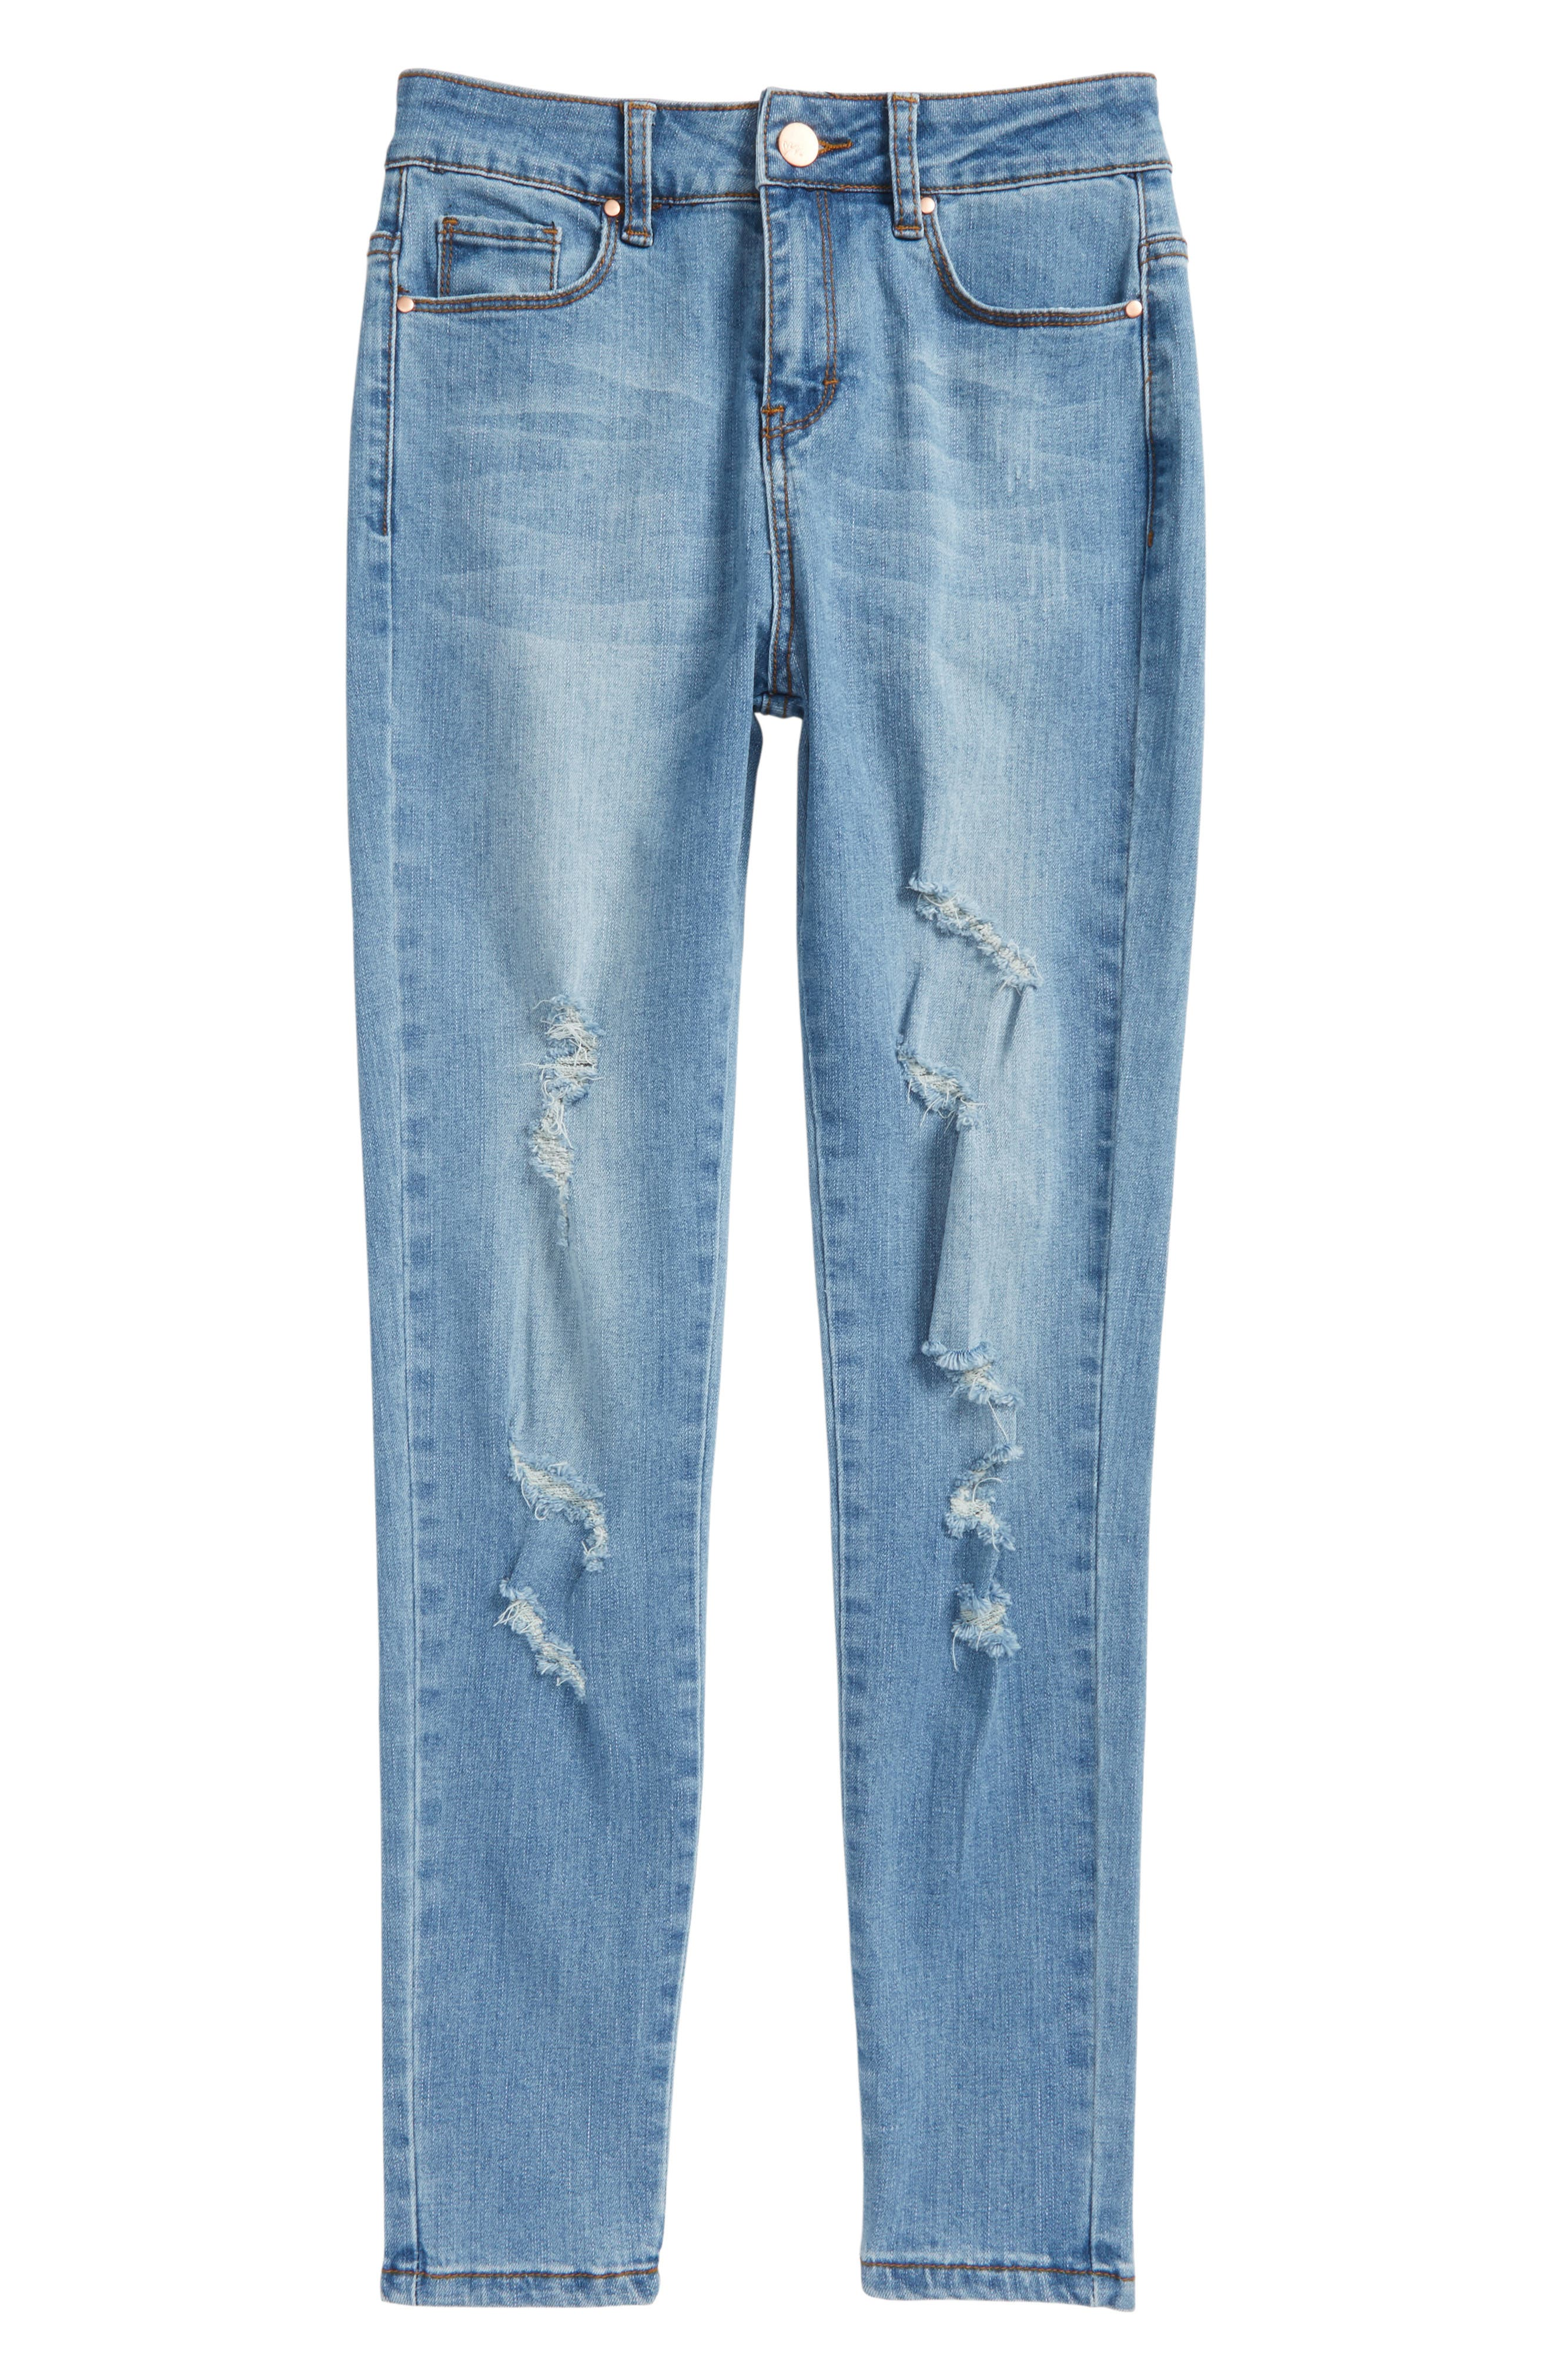 Distressed Skinny Jeans,                         Main,                         color, Light Blue Denim